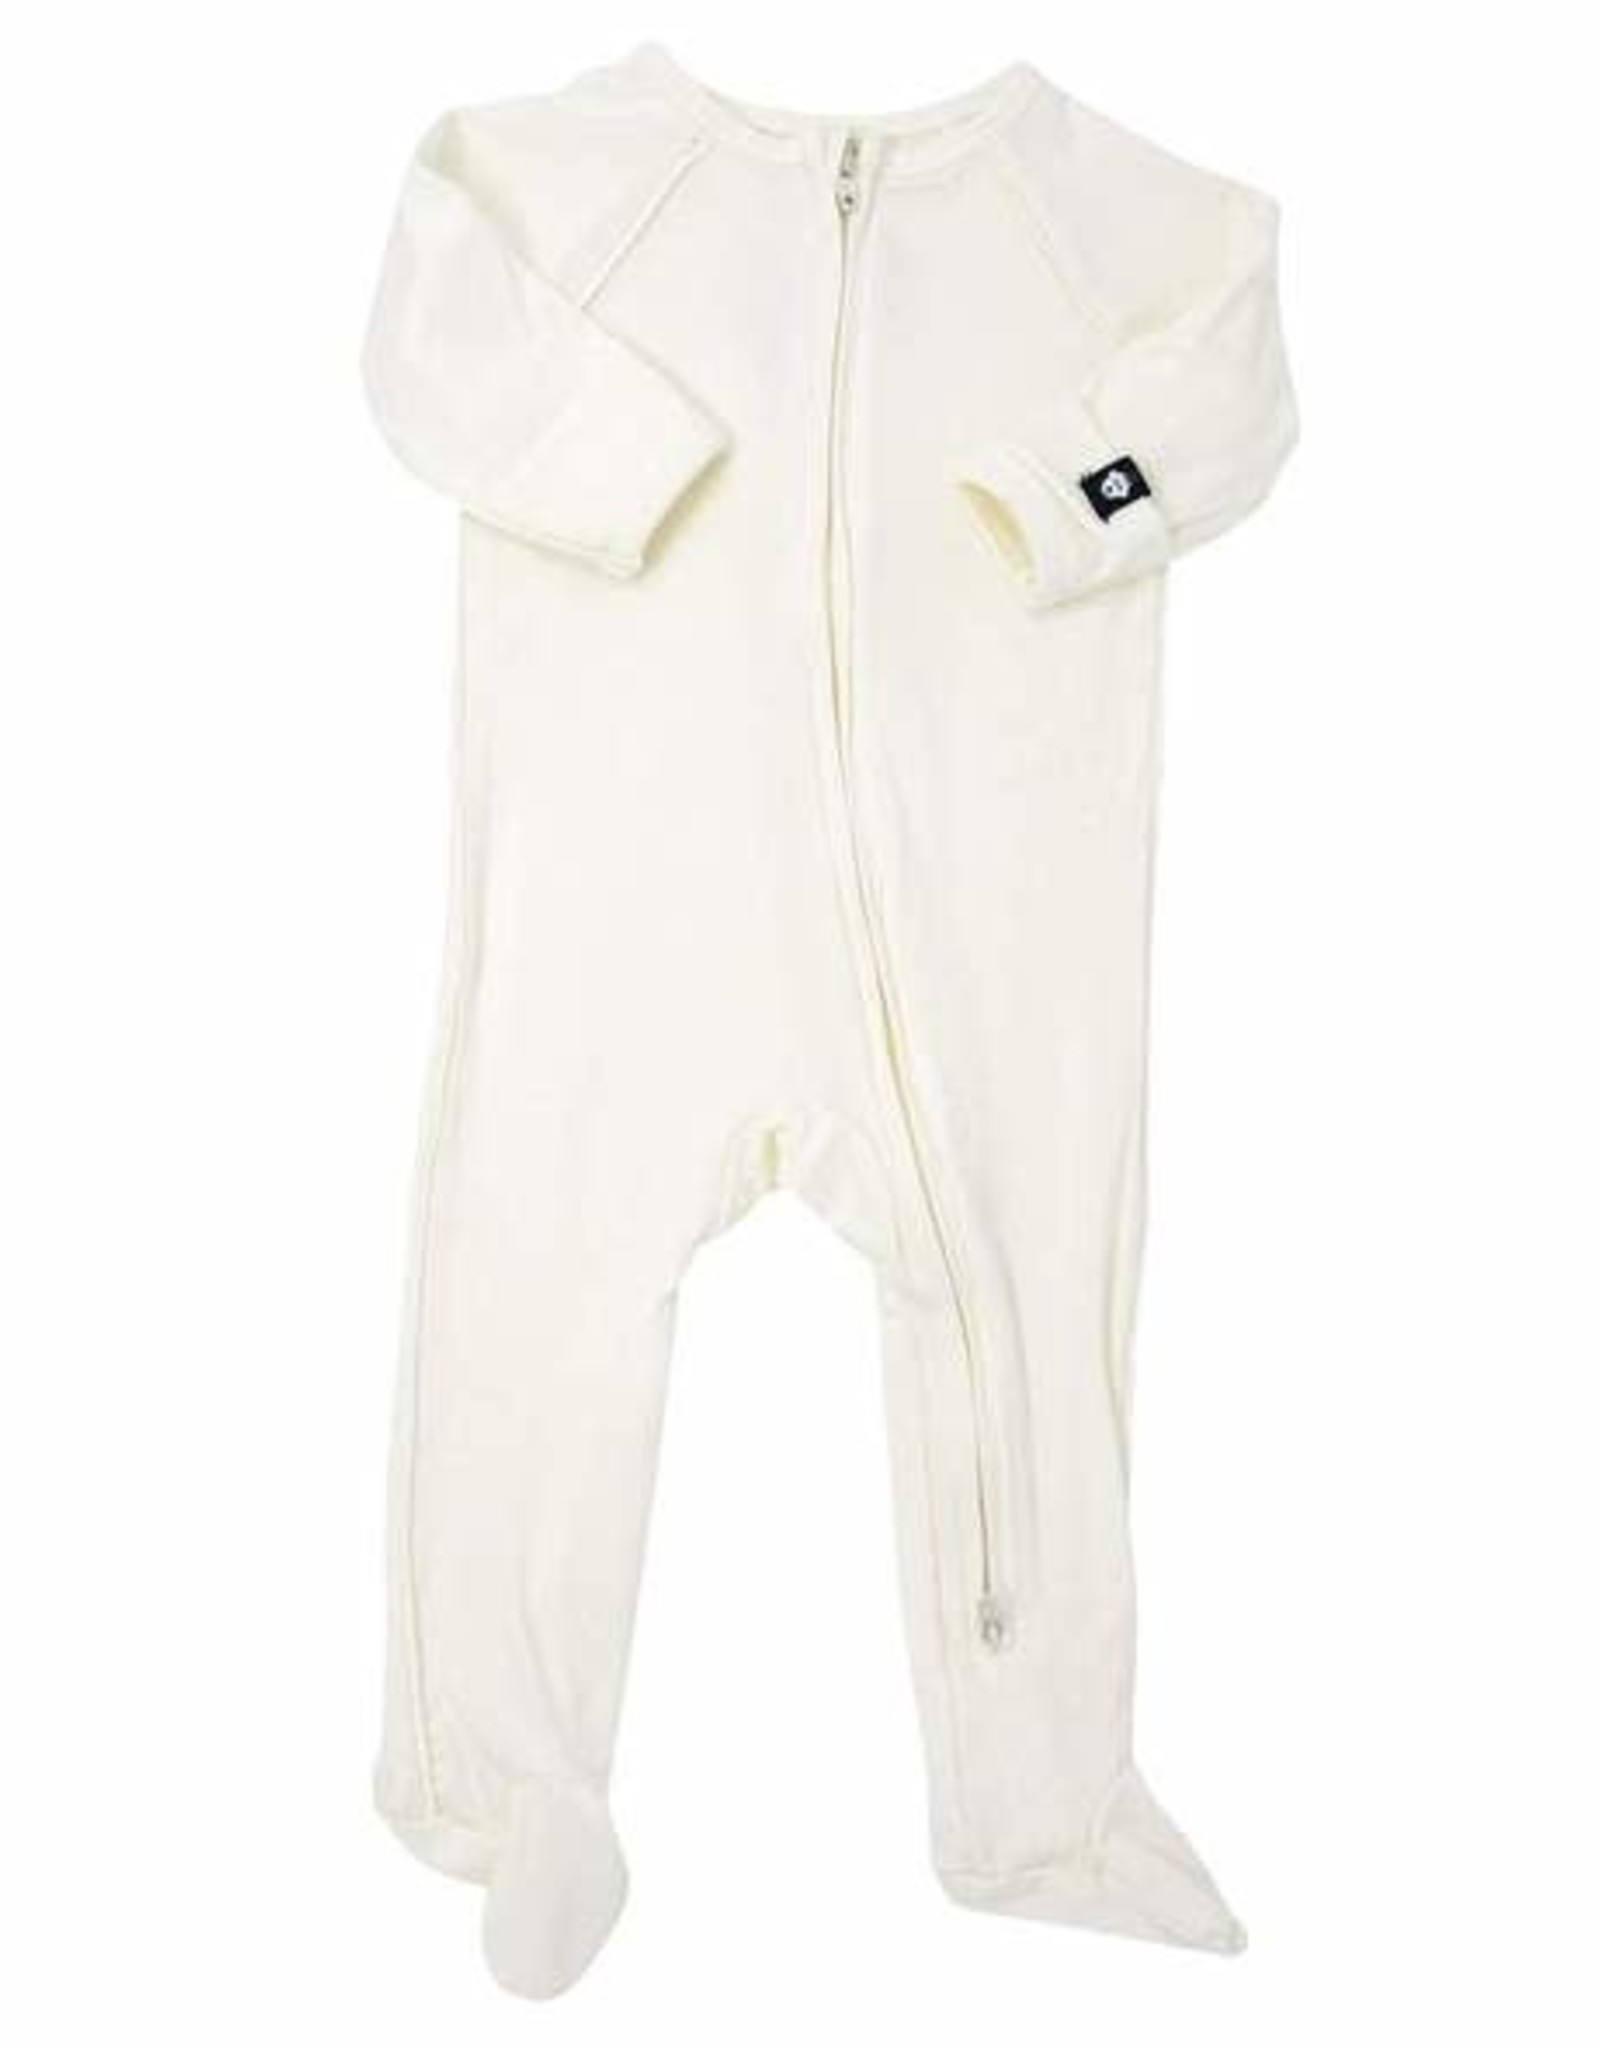 Sweet Bamboo Piped Zipper Footie - Whispery White